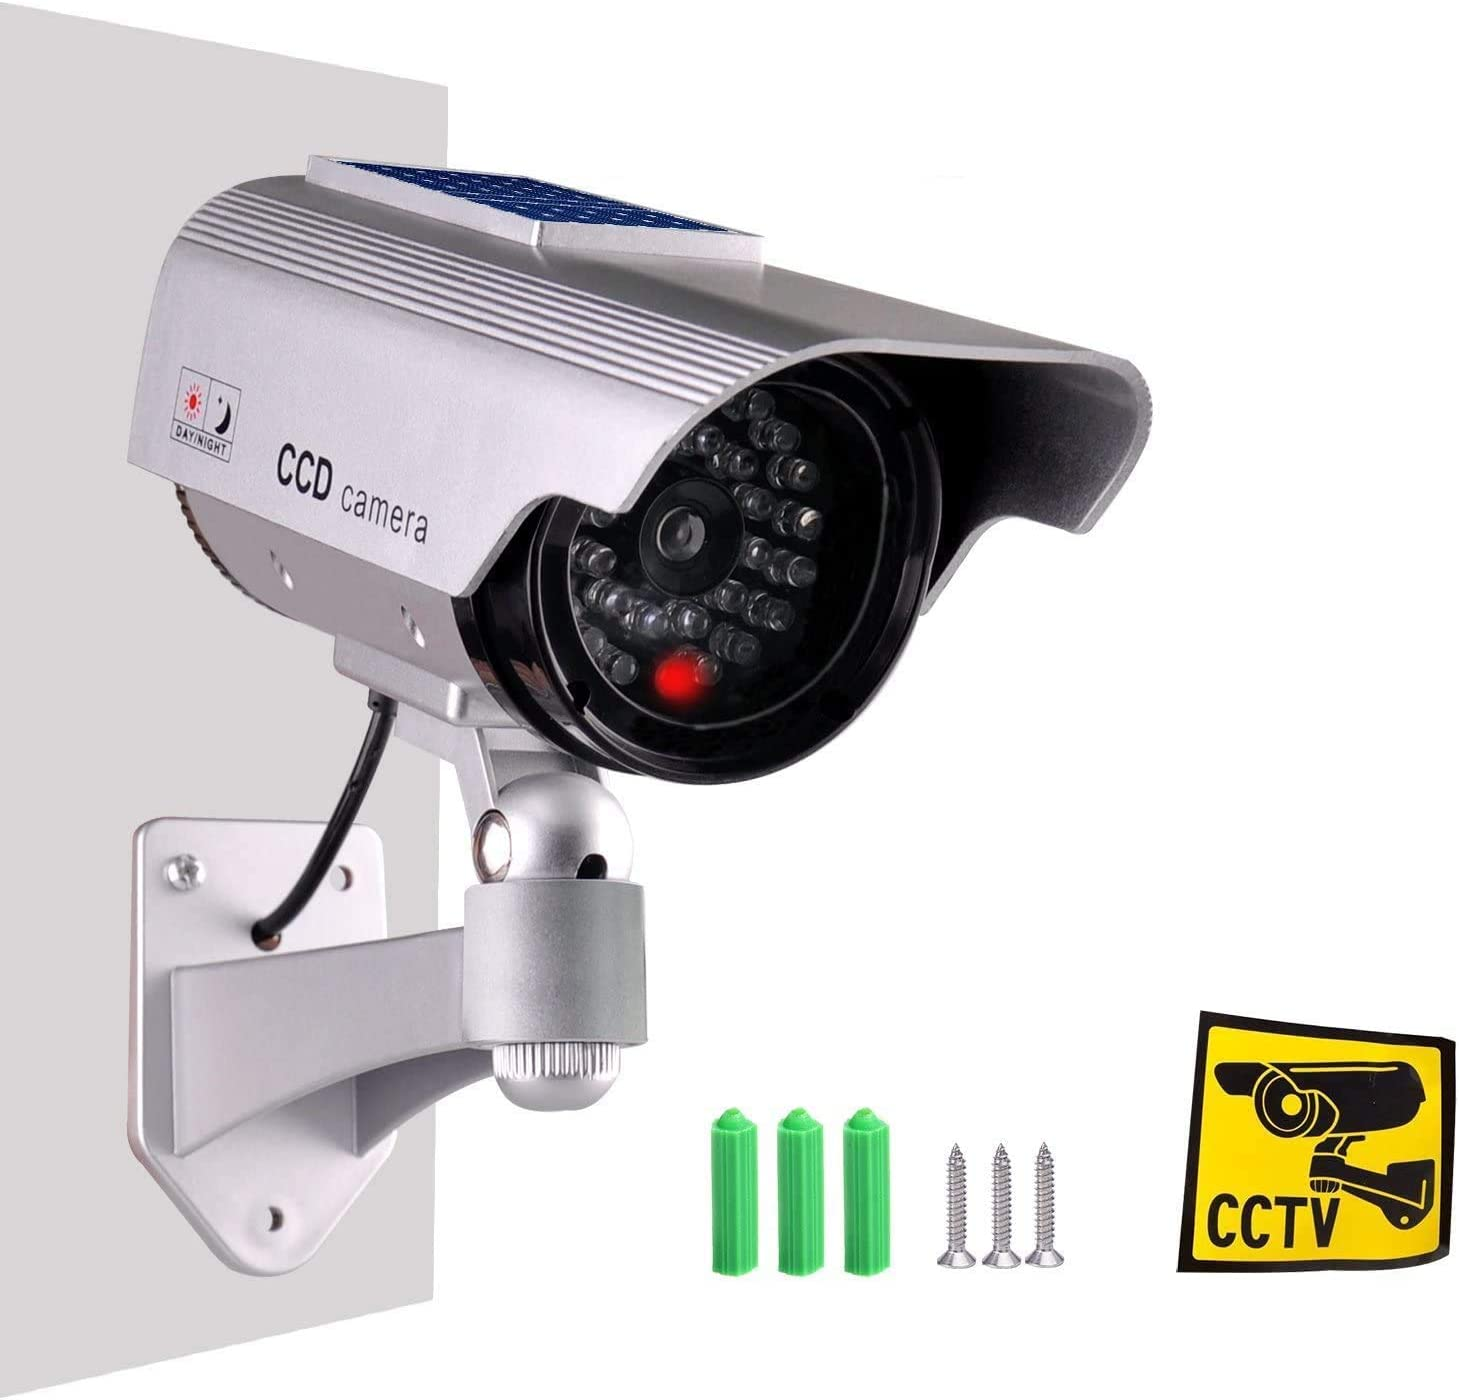 Dummy Fake Security Camera,ISEEUSEE Solar Powered Fake Surveillance Camera with Flash LED Dummy Bullet Simulated CCTV Camera,Indoor Outdoor Use Good for Home/Office/Shop/Garage - Silver Color